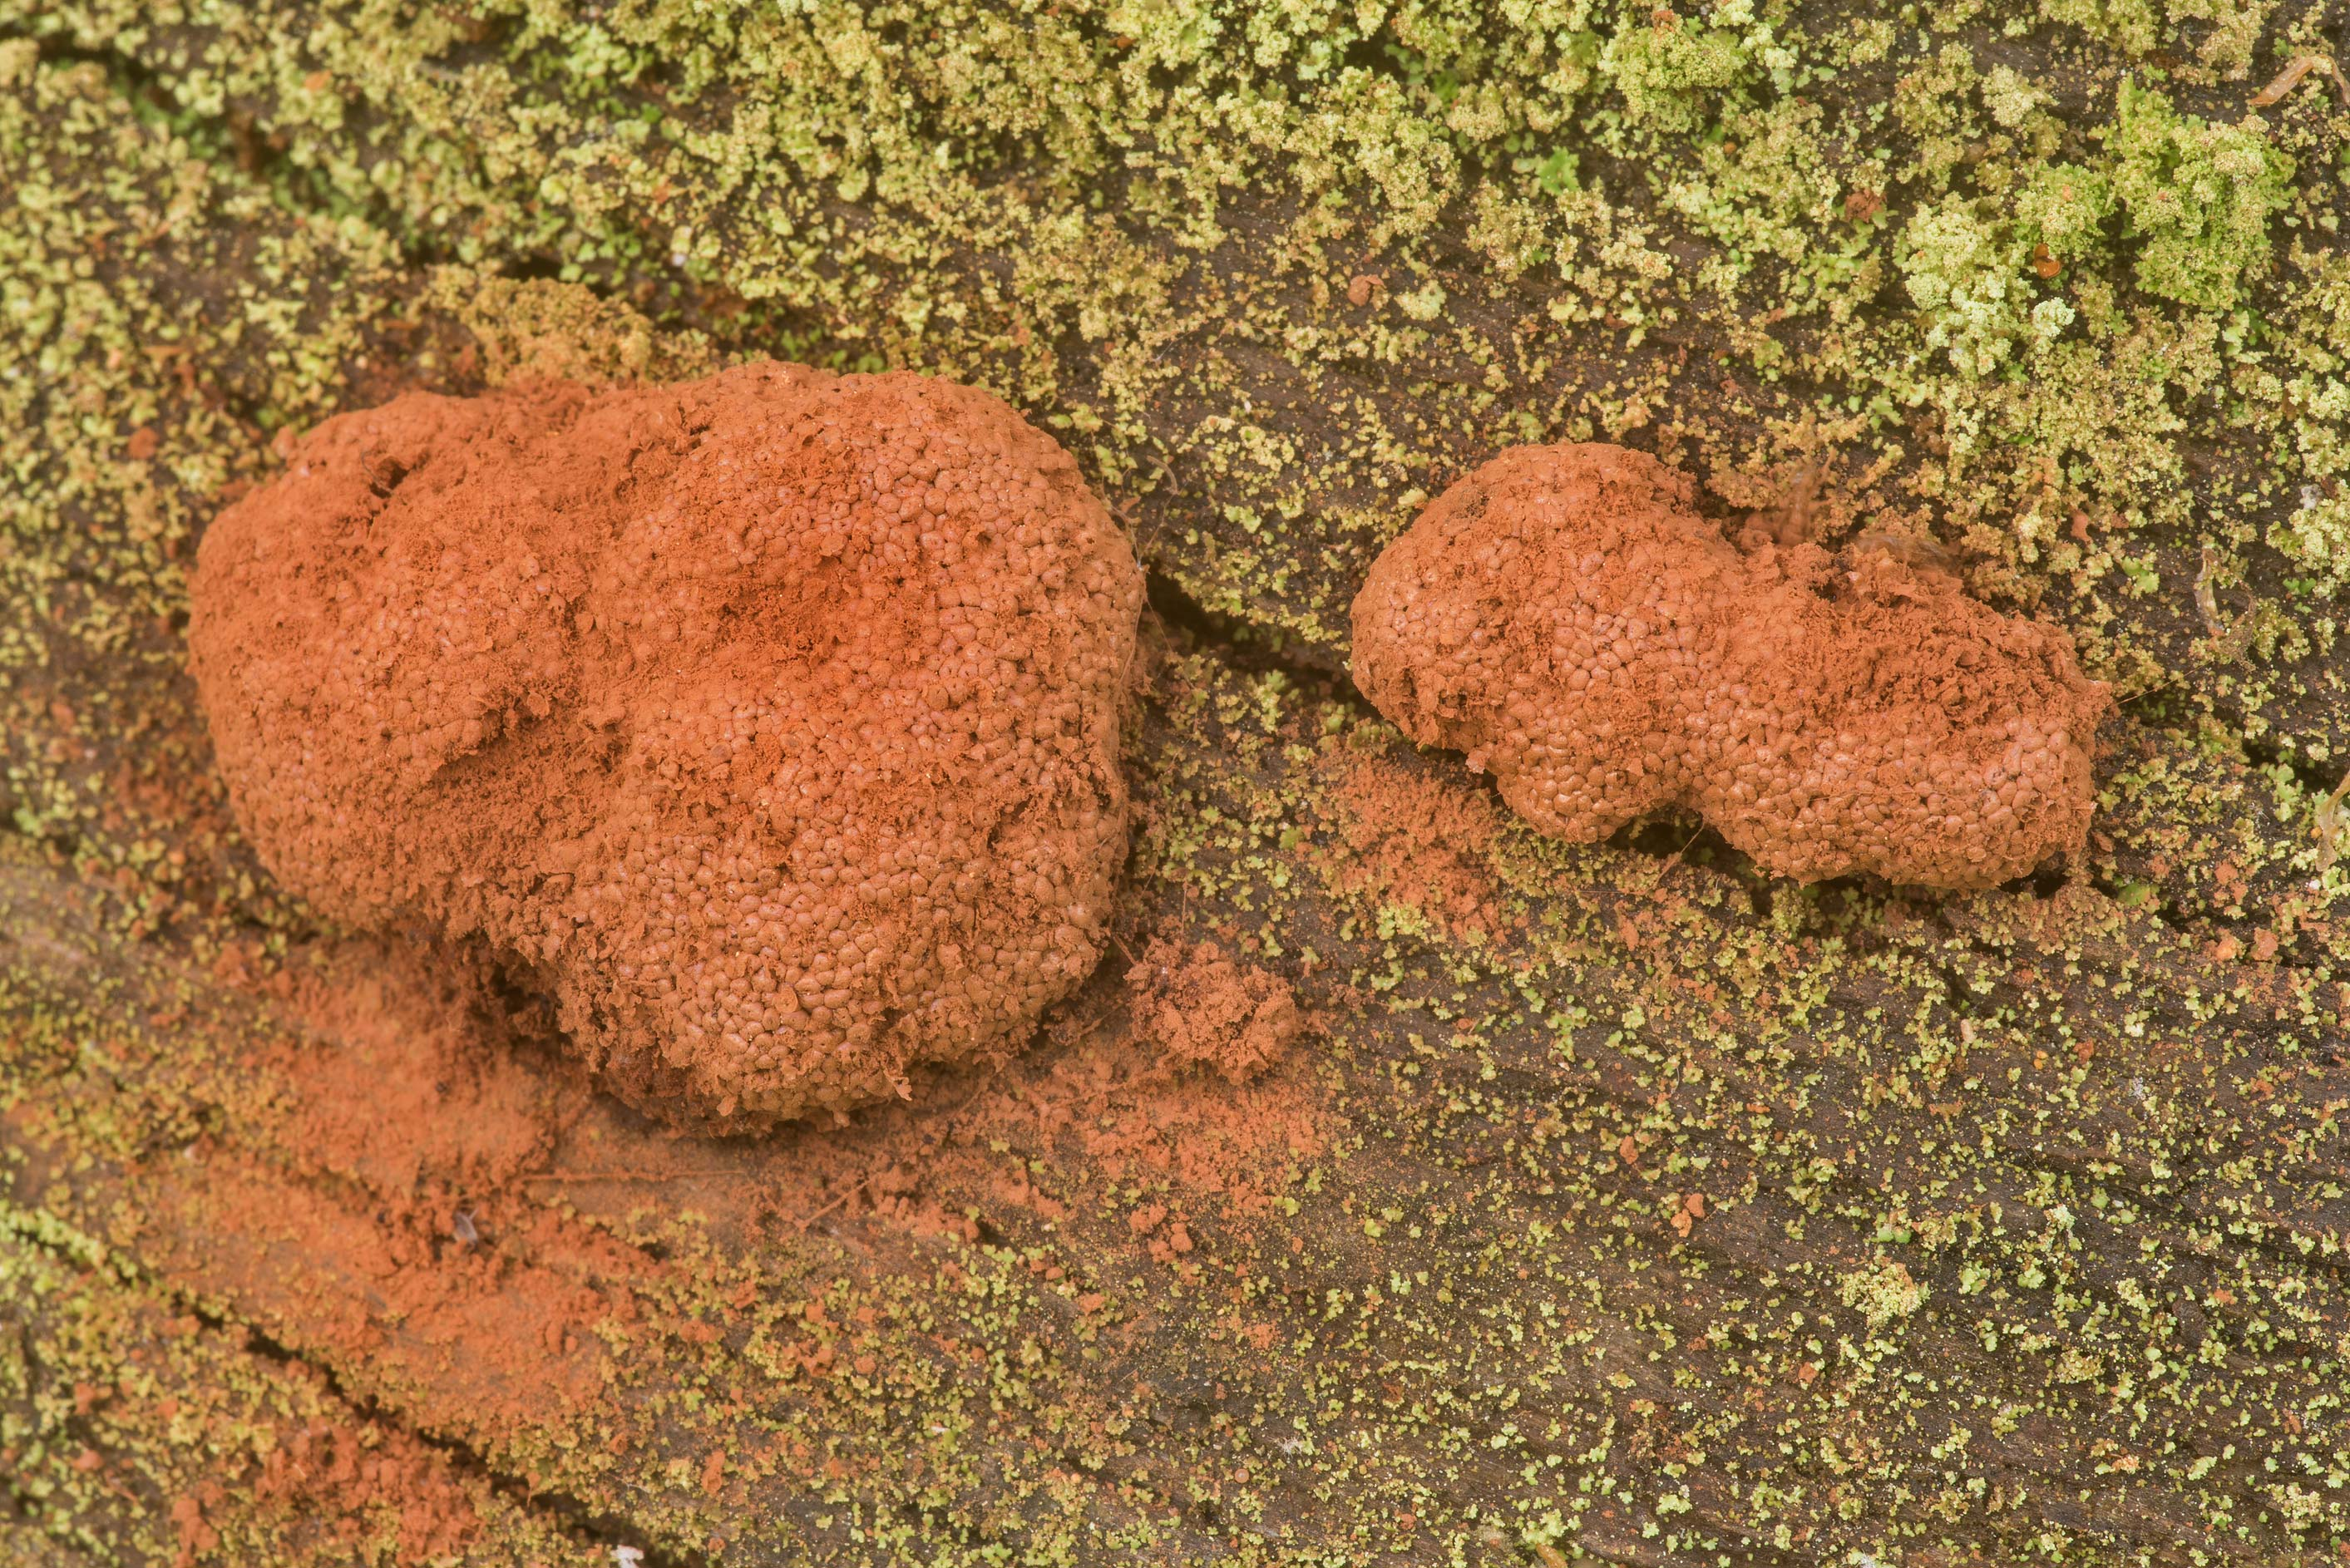 Brown sporangia of raspberry slime mold (Tubifera...in Sam Houston National Forest. Texas